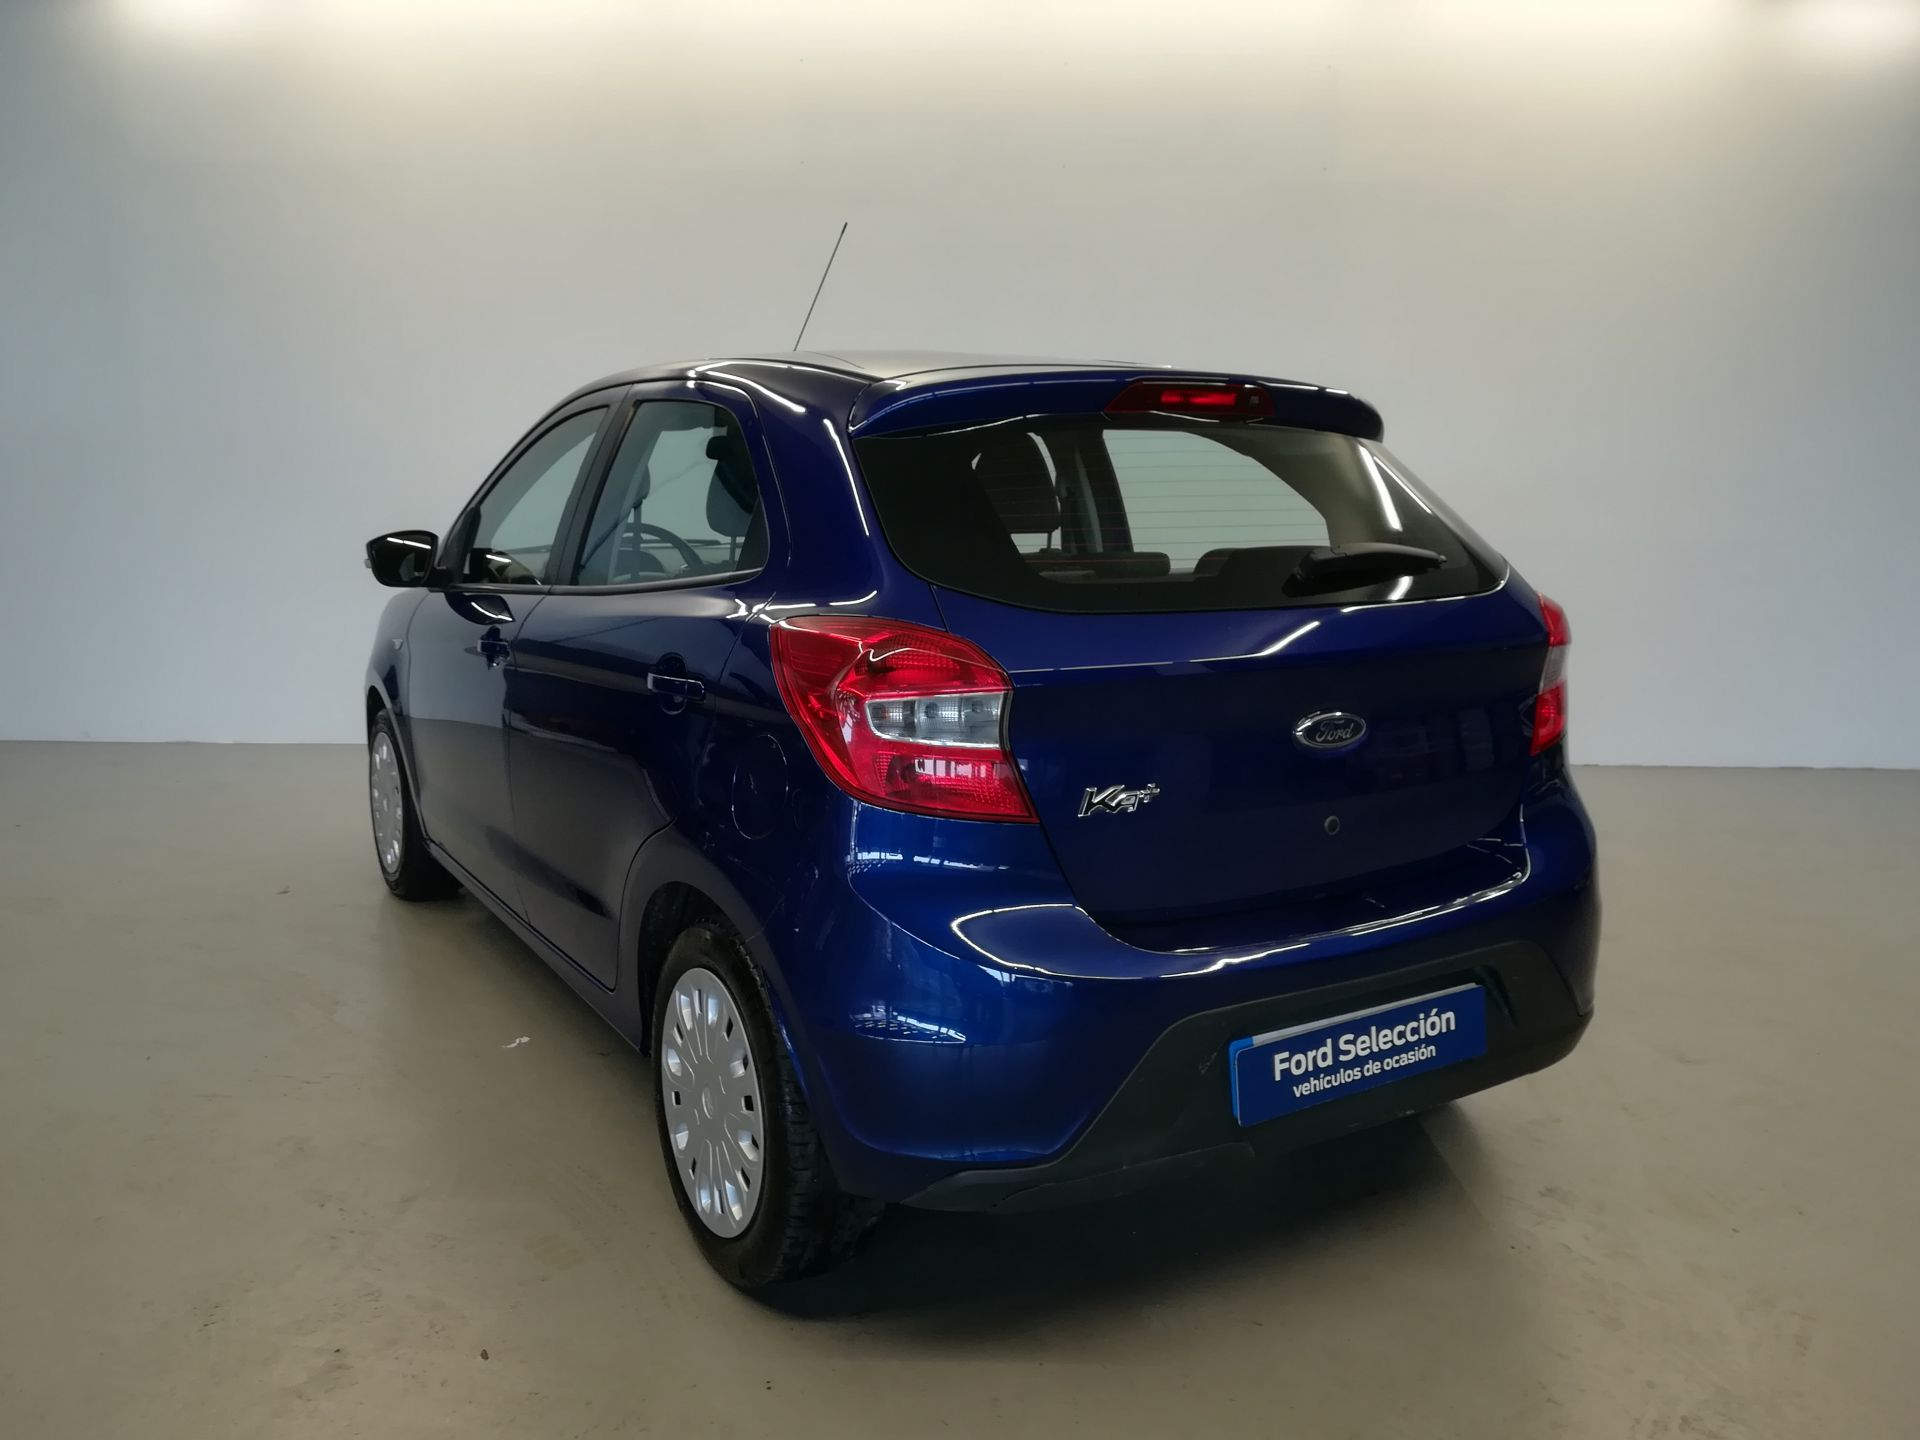 Ford Ka+ 1.2 Ti-VCT 51kW Essential